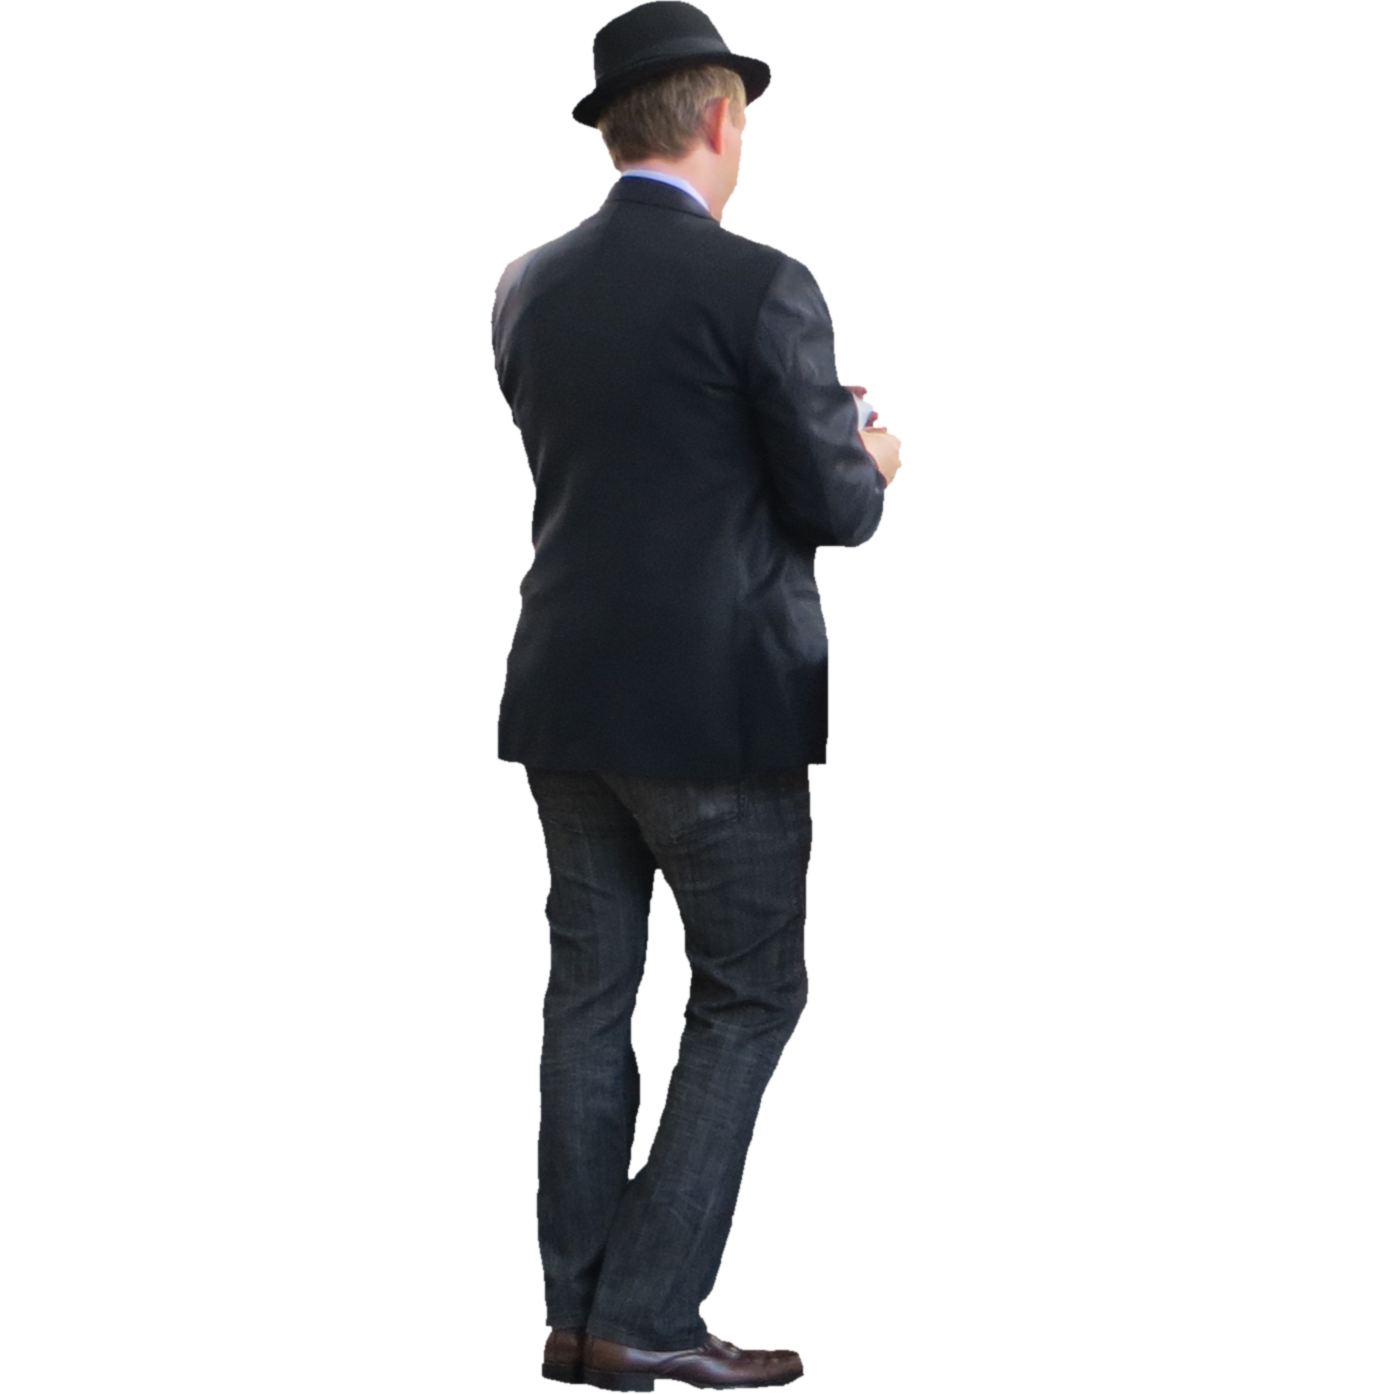 People standing back png. Man images transparent free